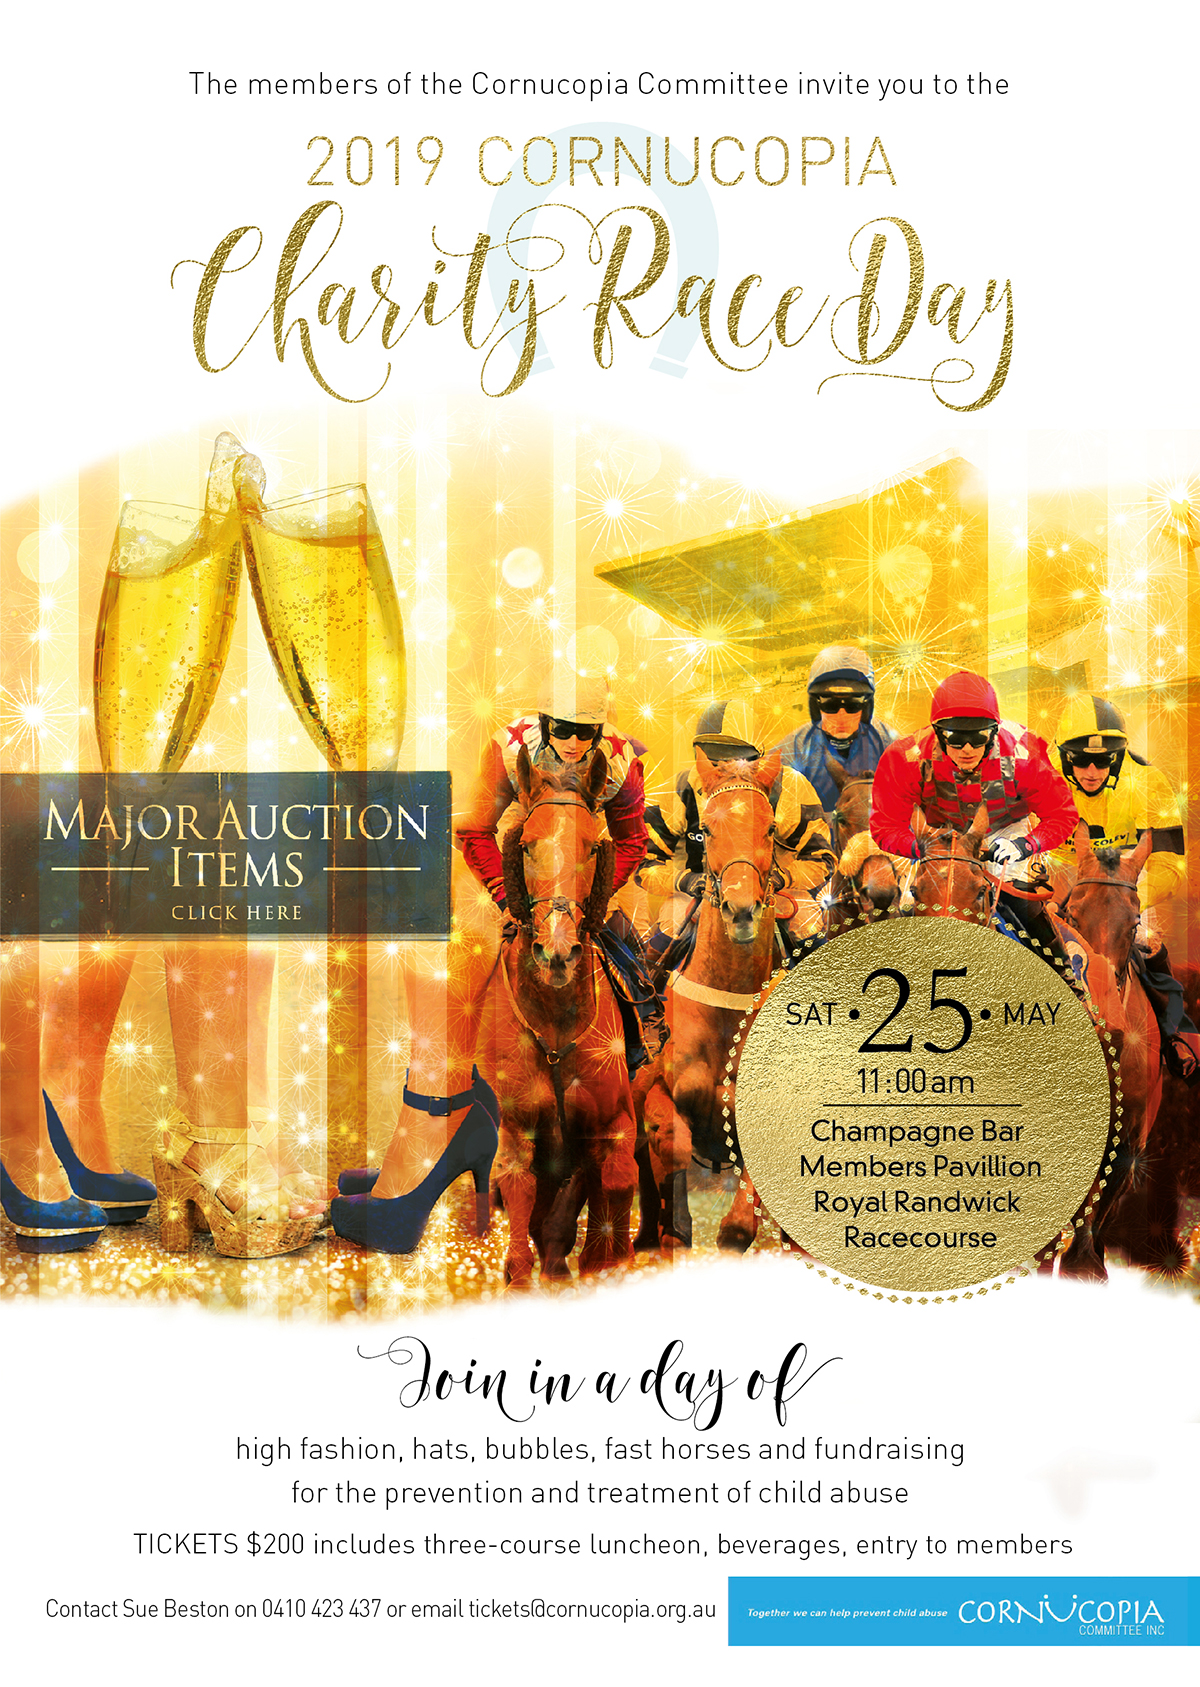 Save the Date Charity Race Day Saturday 25th May at Royal Randwick with great auction prizes.